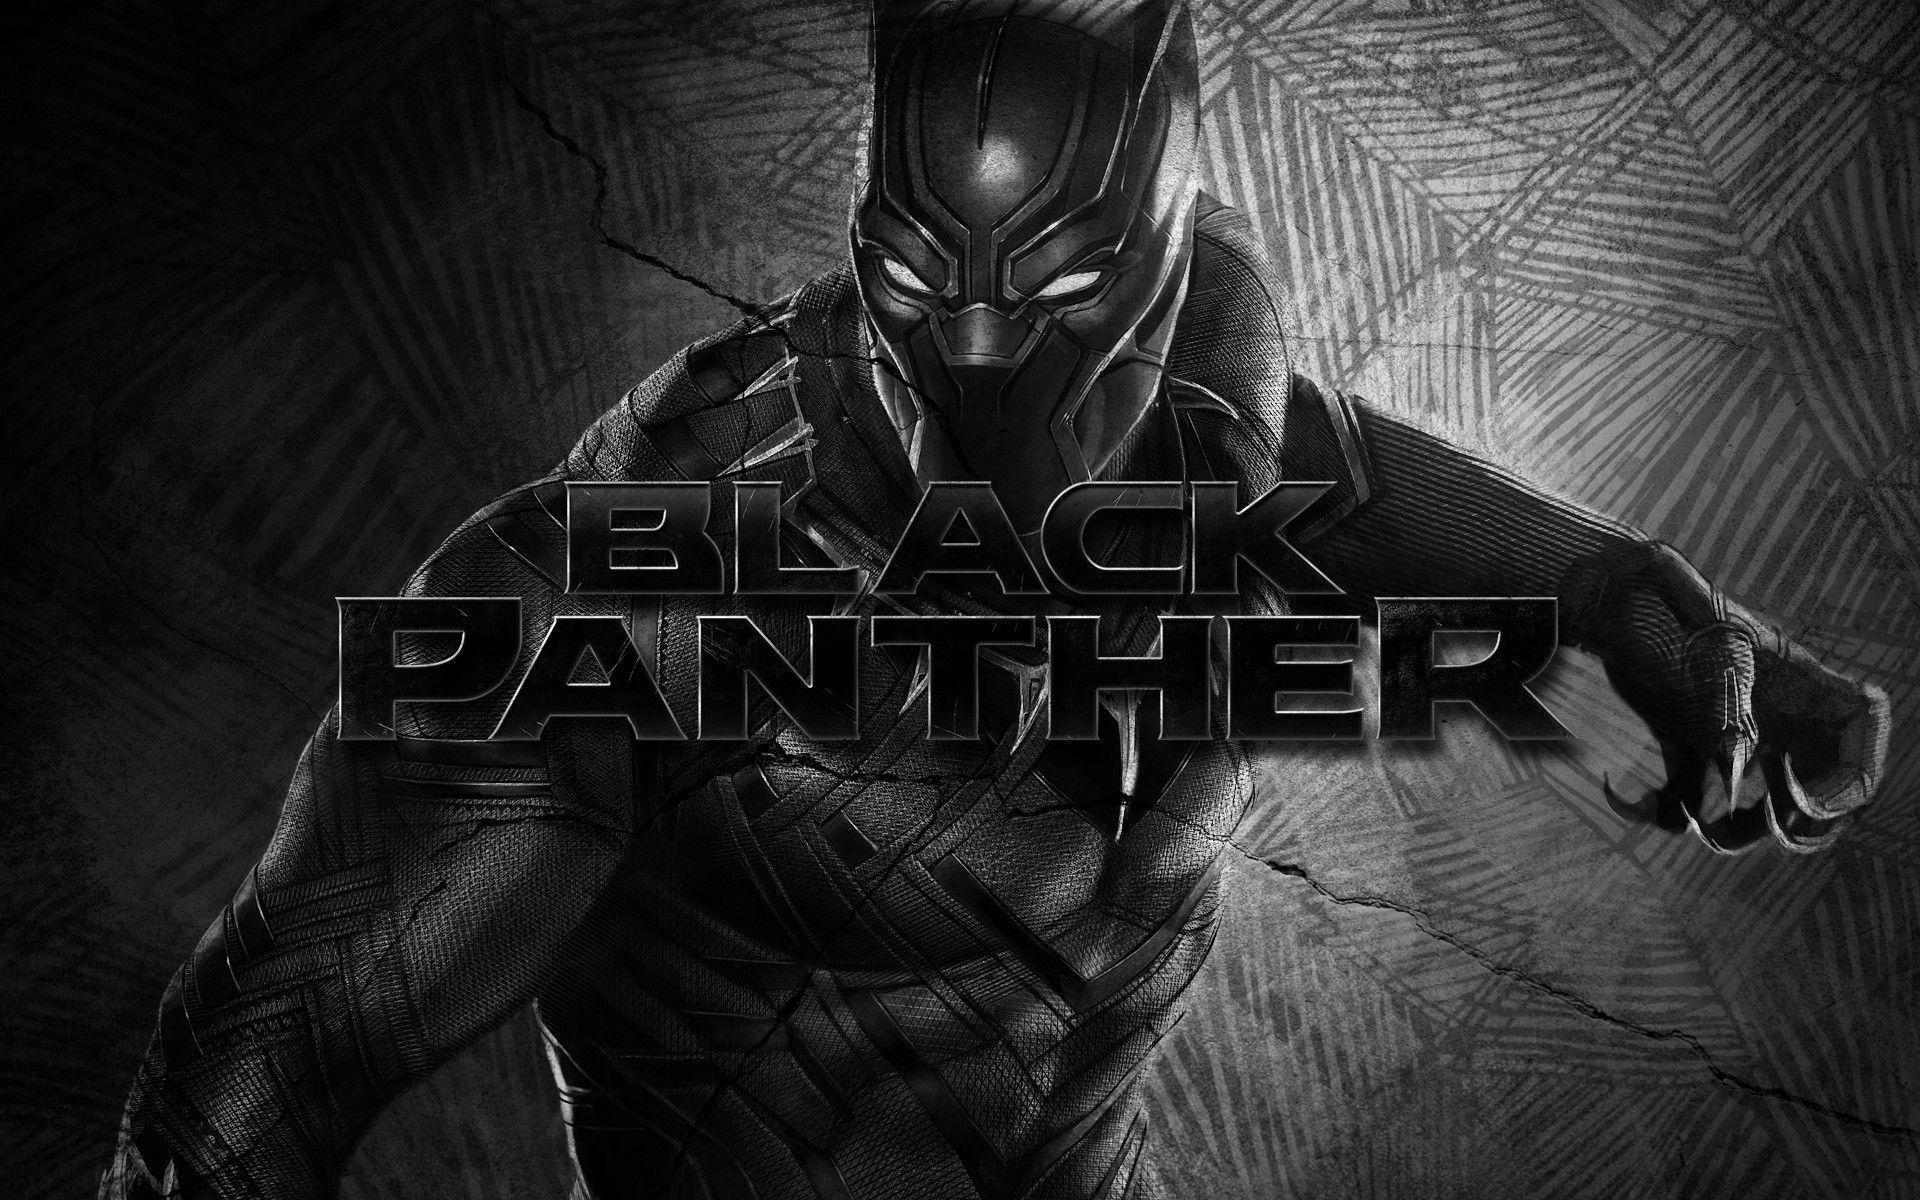 Download Black Panther Movie Wallpaper Hd Backgrounds